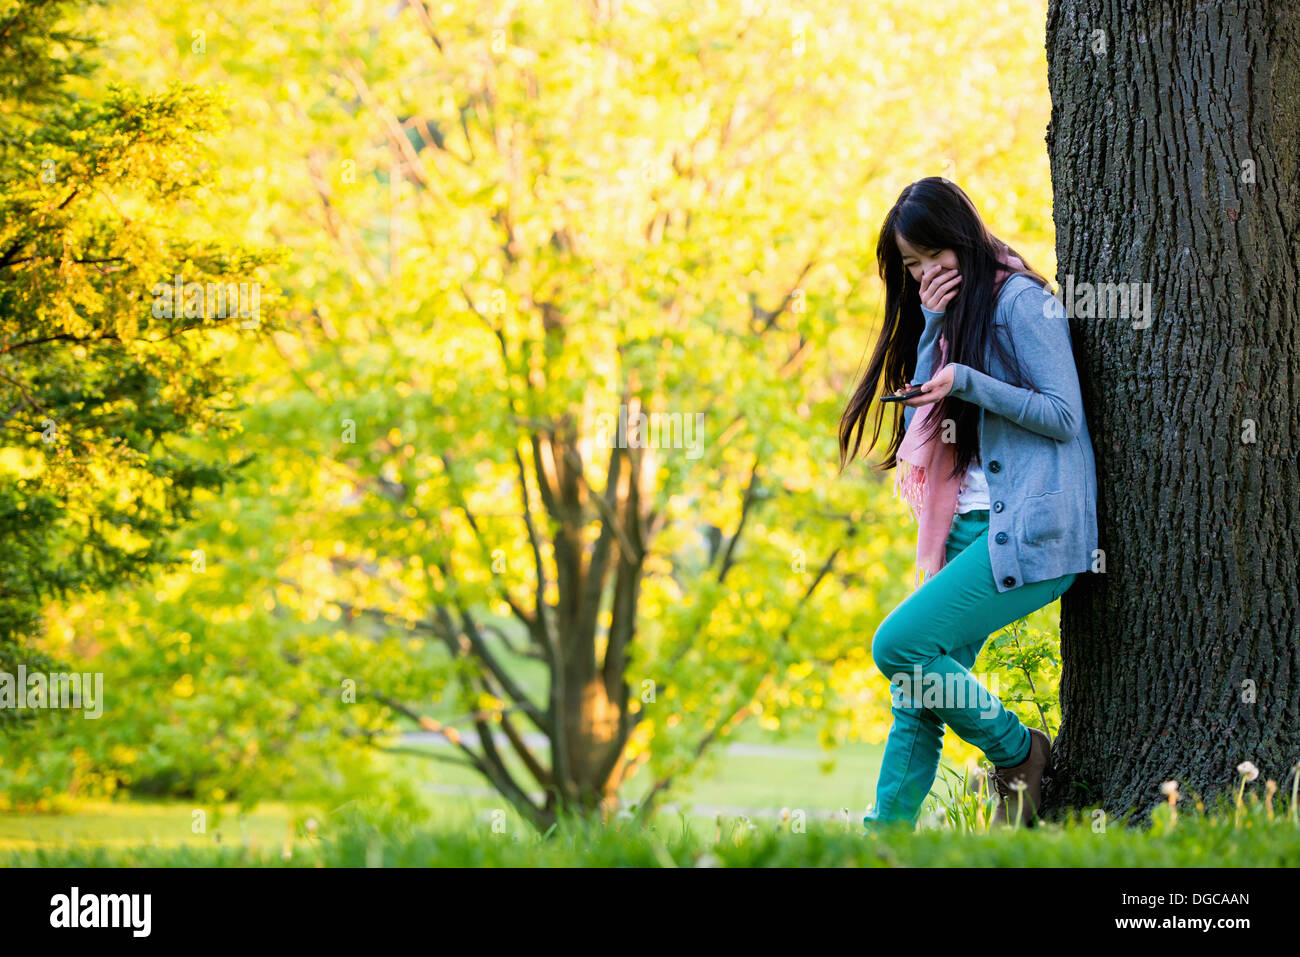 Young female laughing at mobile phone in park - Stock Image